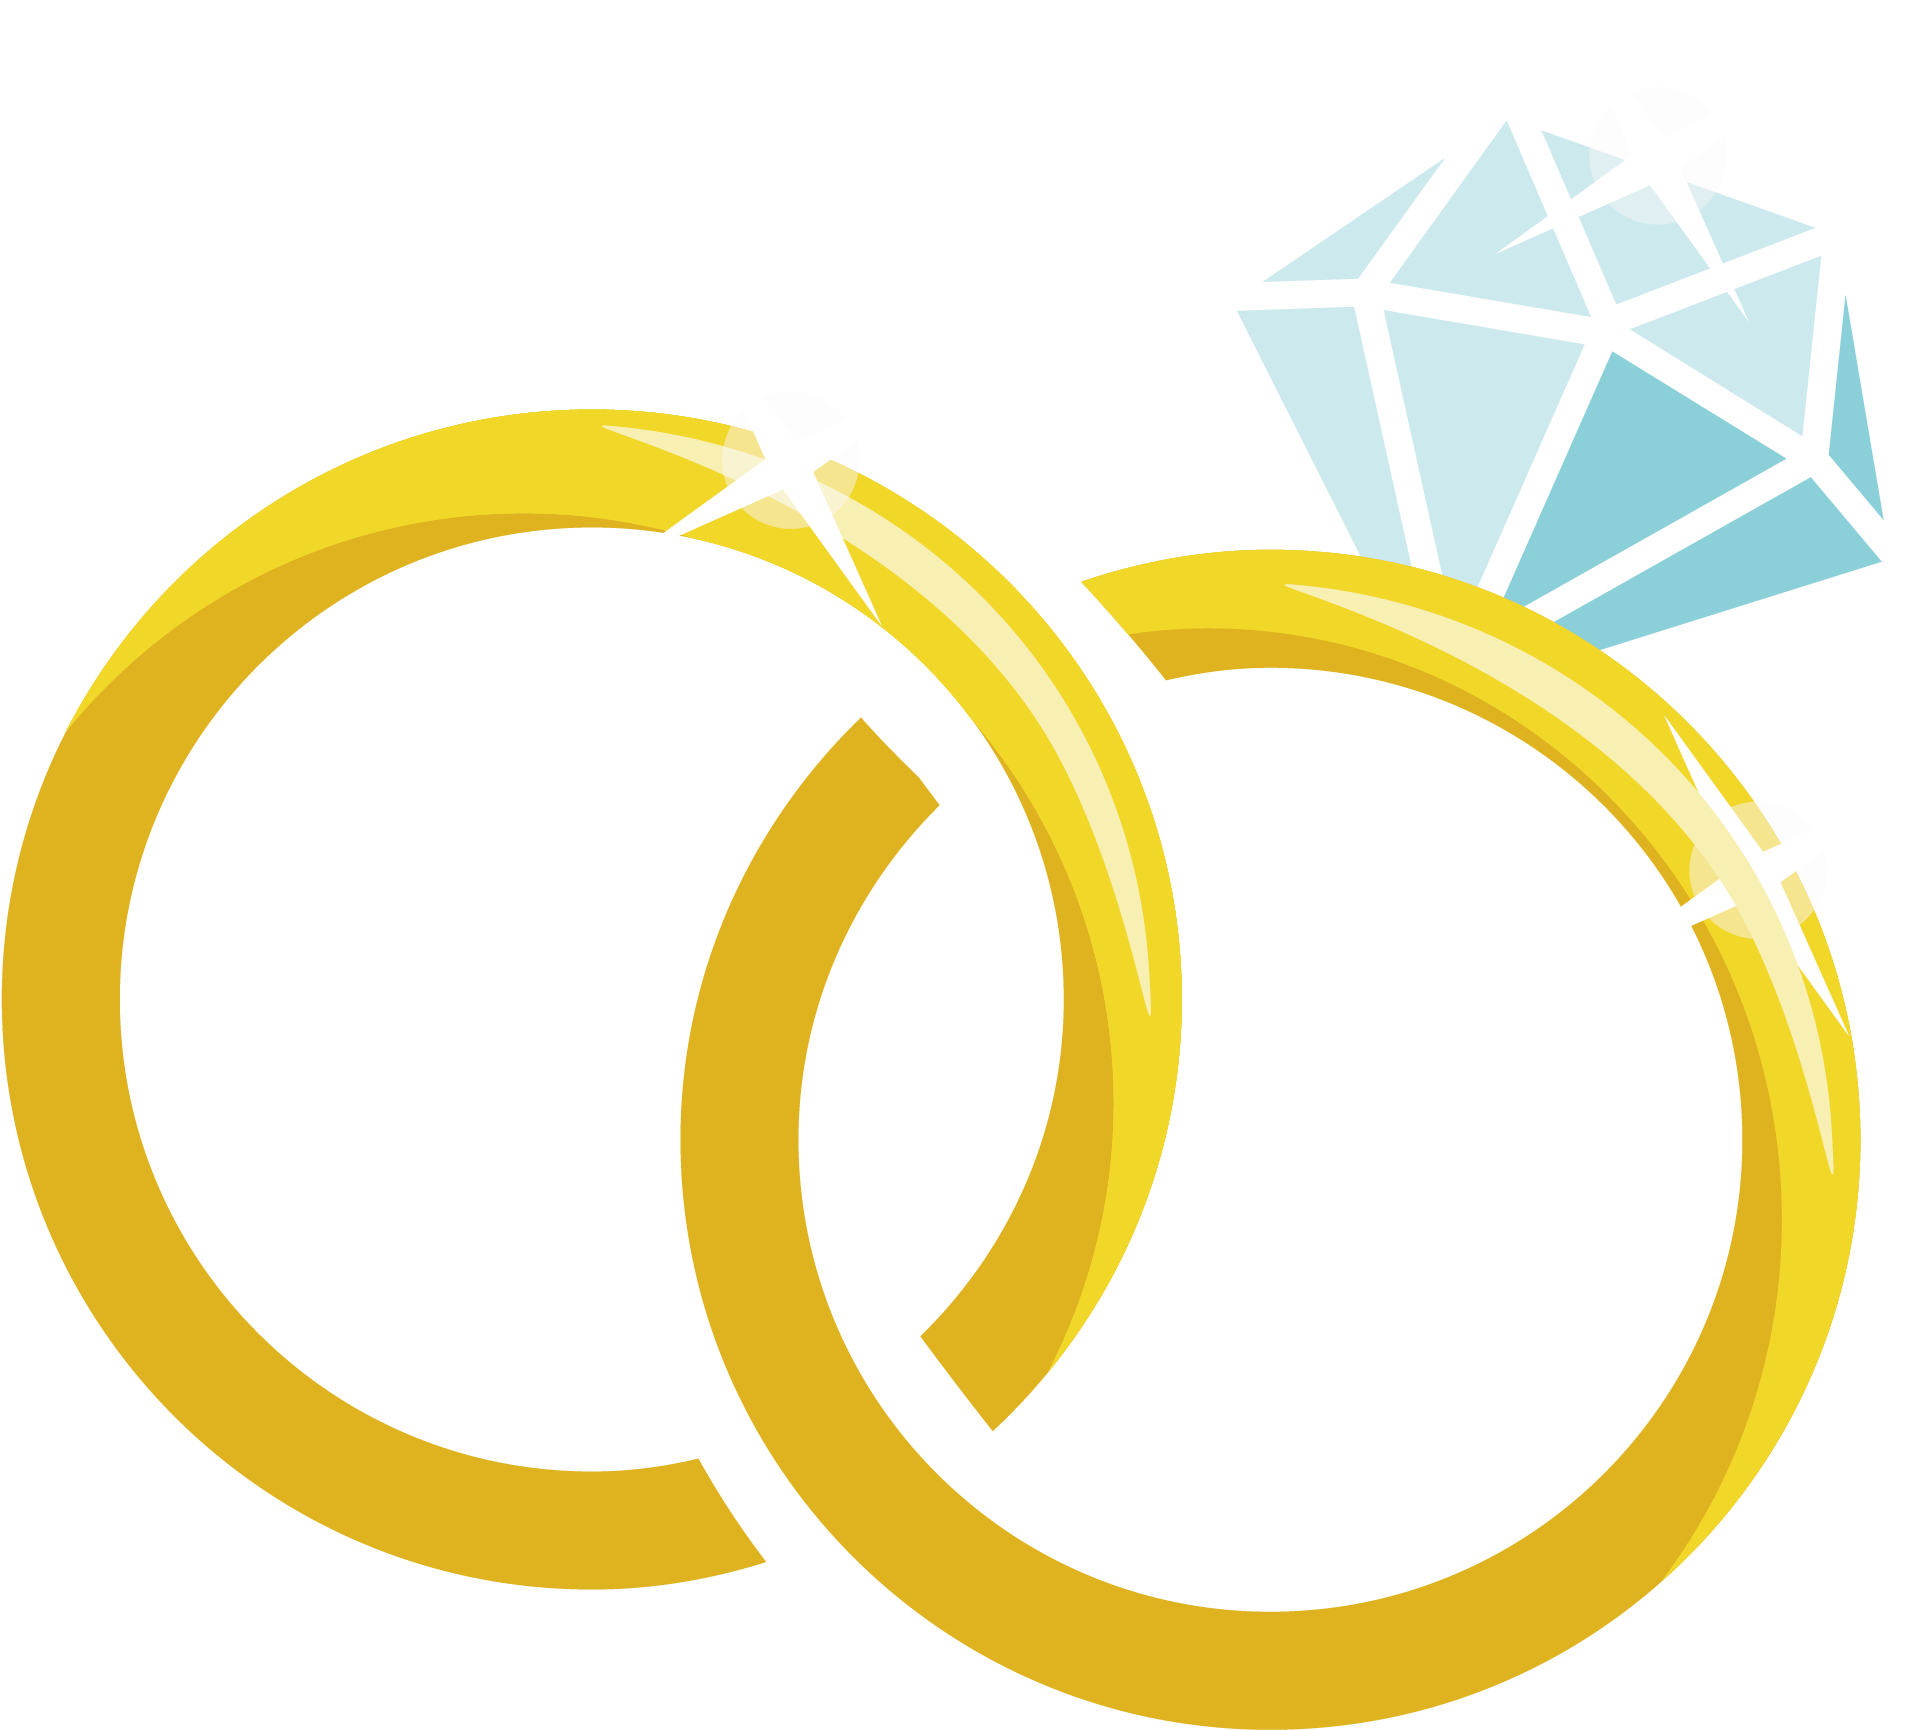 Wedding Ring Png Clipart - Full Size Clipart (#10) - PinClipart